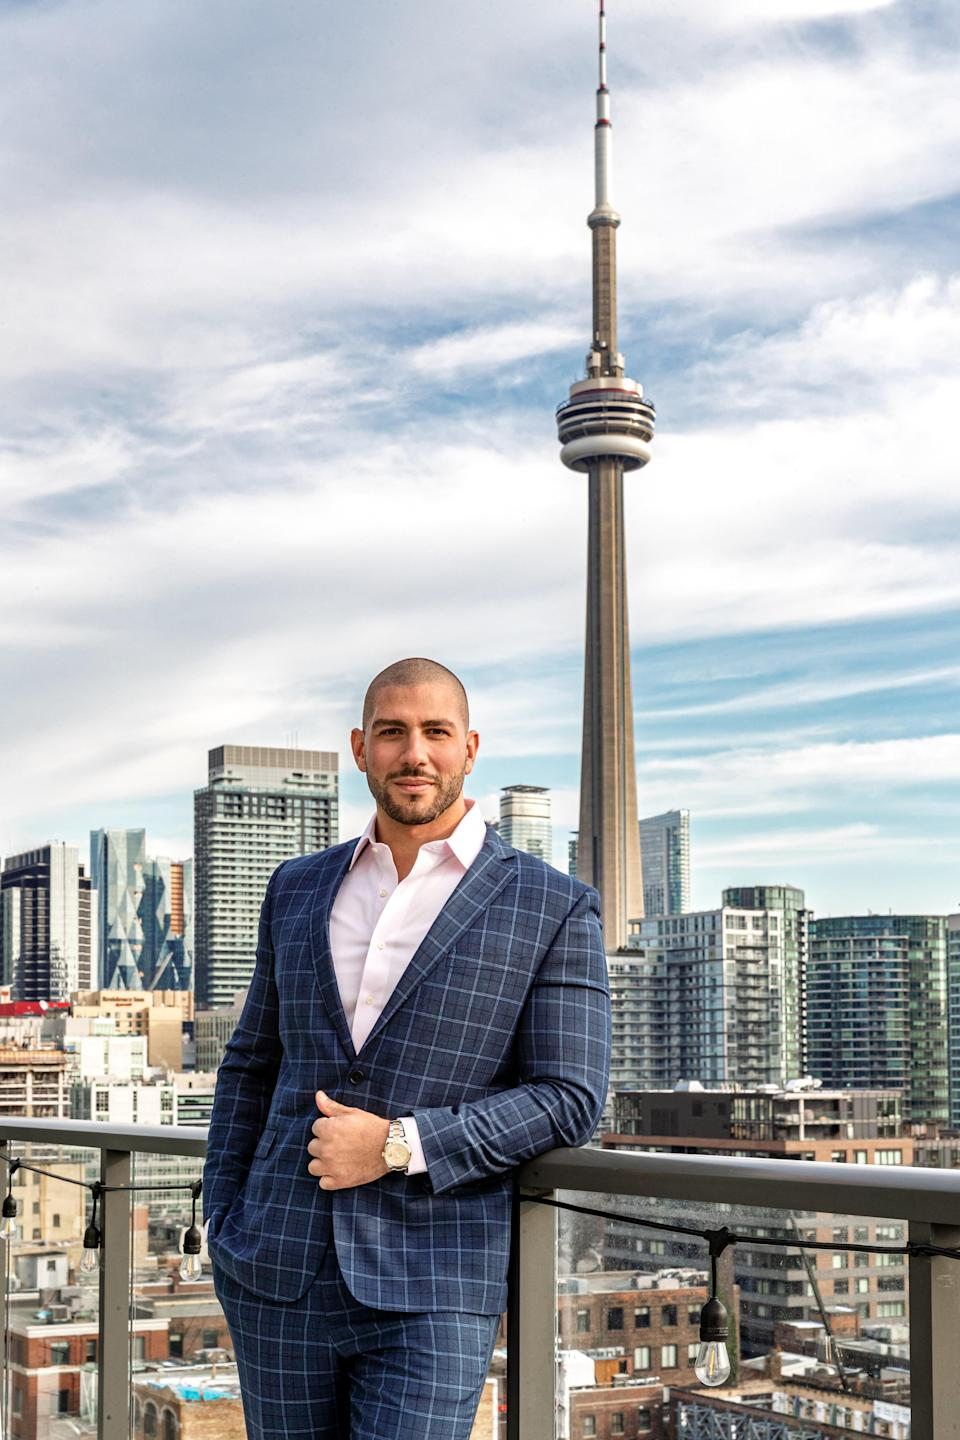 Founder and Chairman of Royal York Property Management.  Nathan Levinson's forward thinking has taught him that measuring success by the differences you make in the world surpasses new ways of thinking and best business practices.